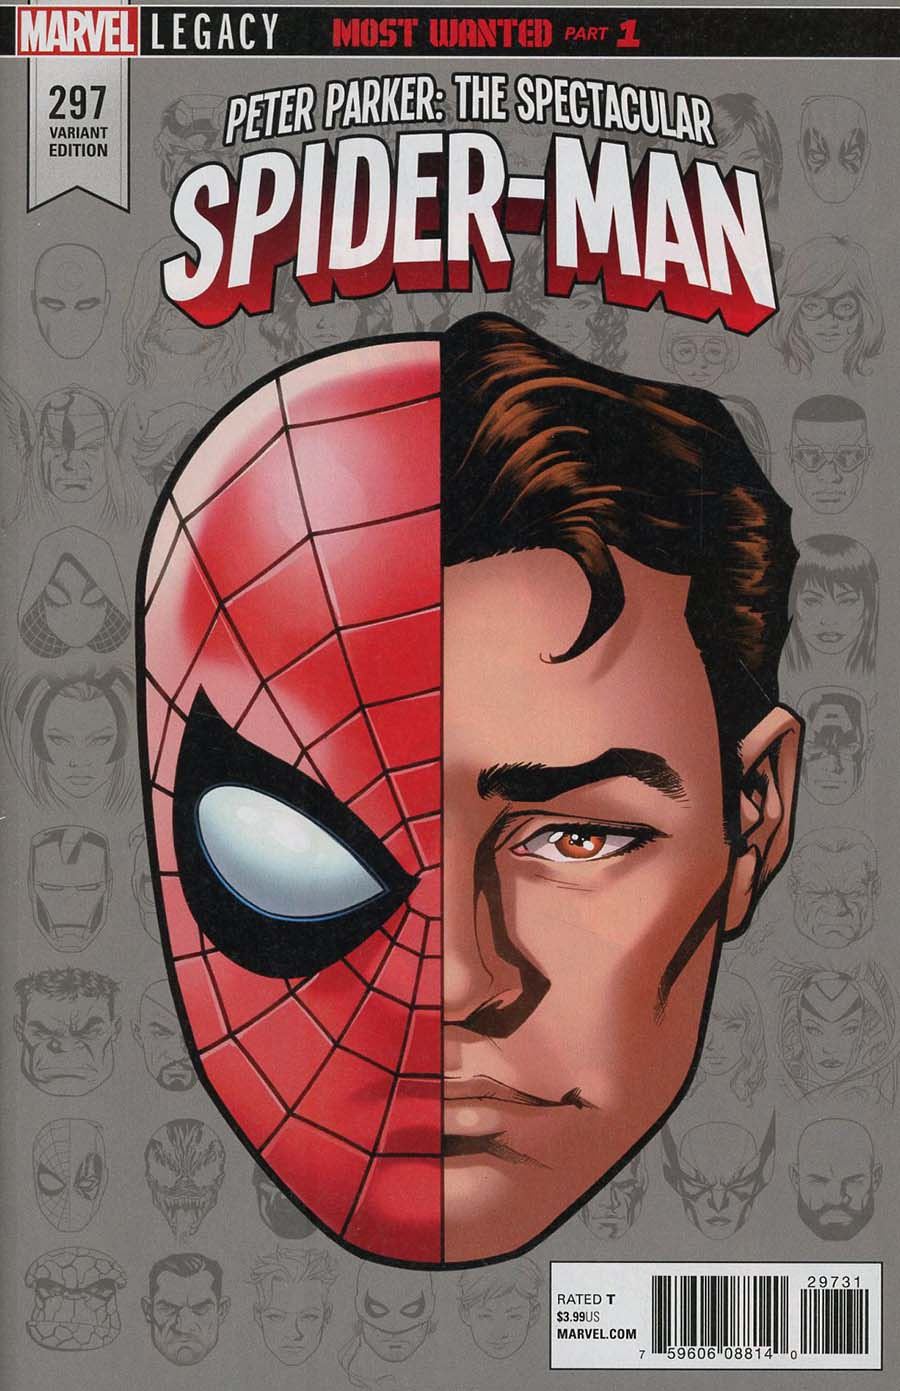 Peter Parker Spectacular Spider-Man #297 Cover C Incentive Mike McKone Legacy Headshot Variant Cover (Marvel Legacy Tie-In)